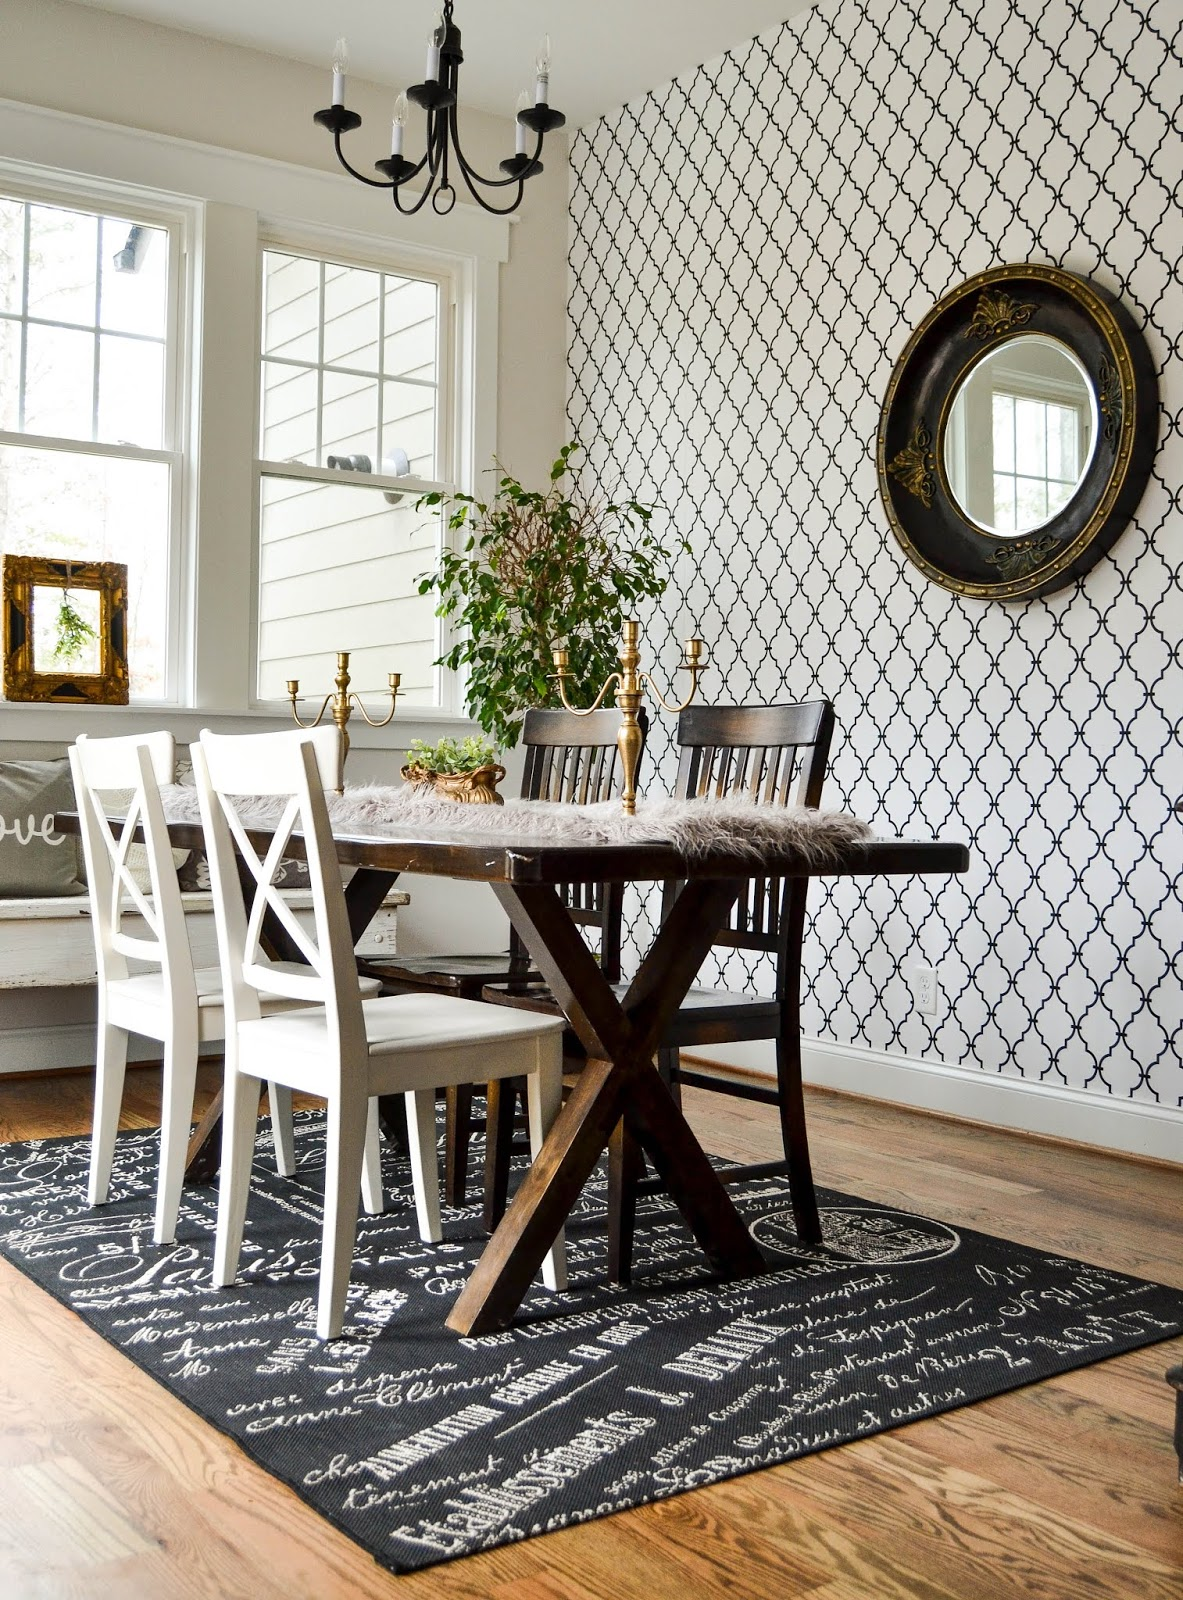 Wallpaper Accent in the Dining Room | Down to Earth Style